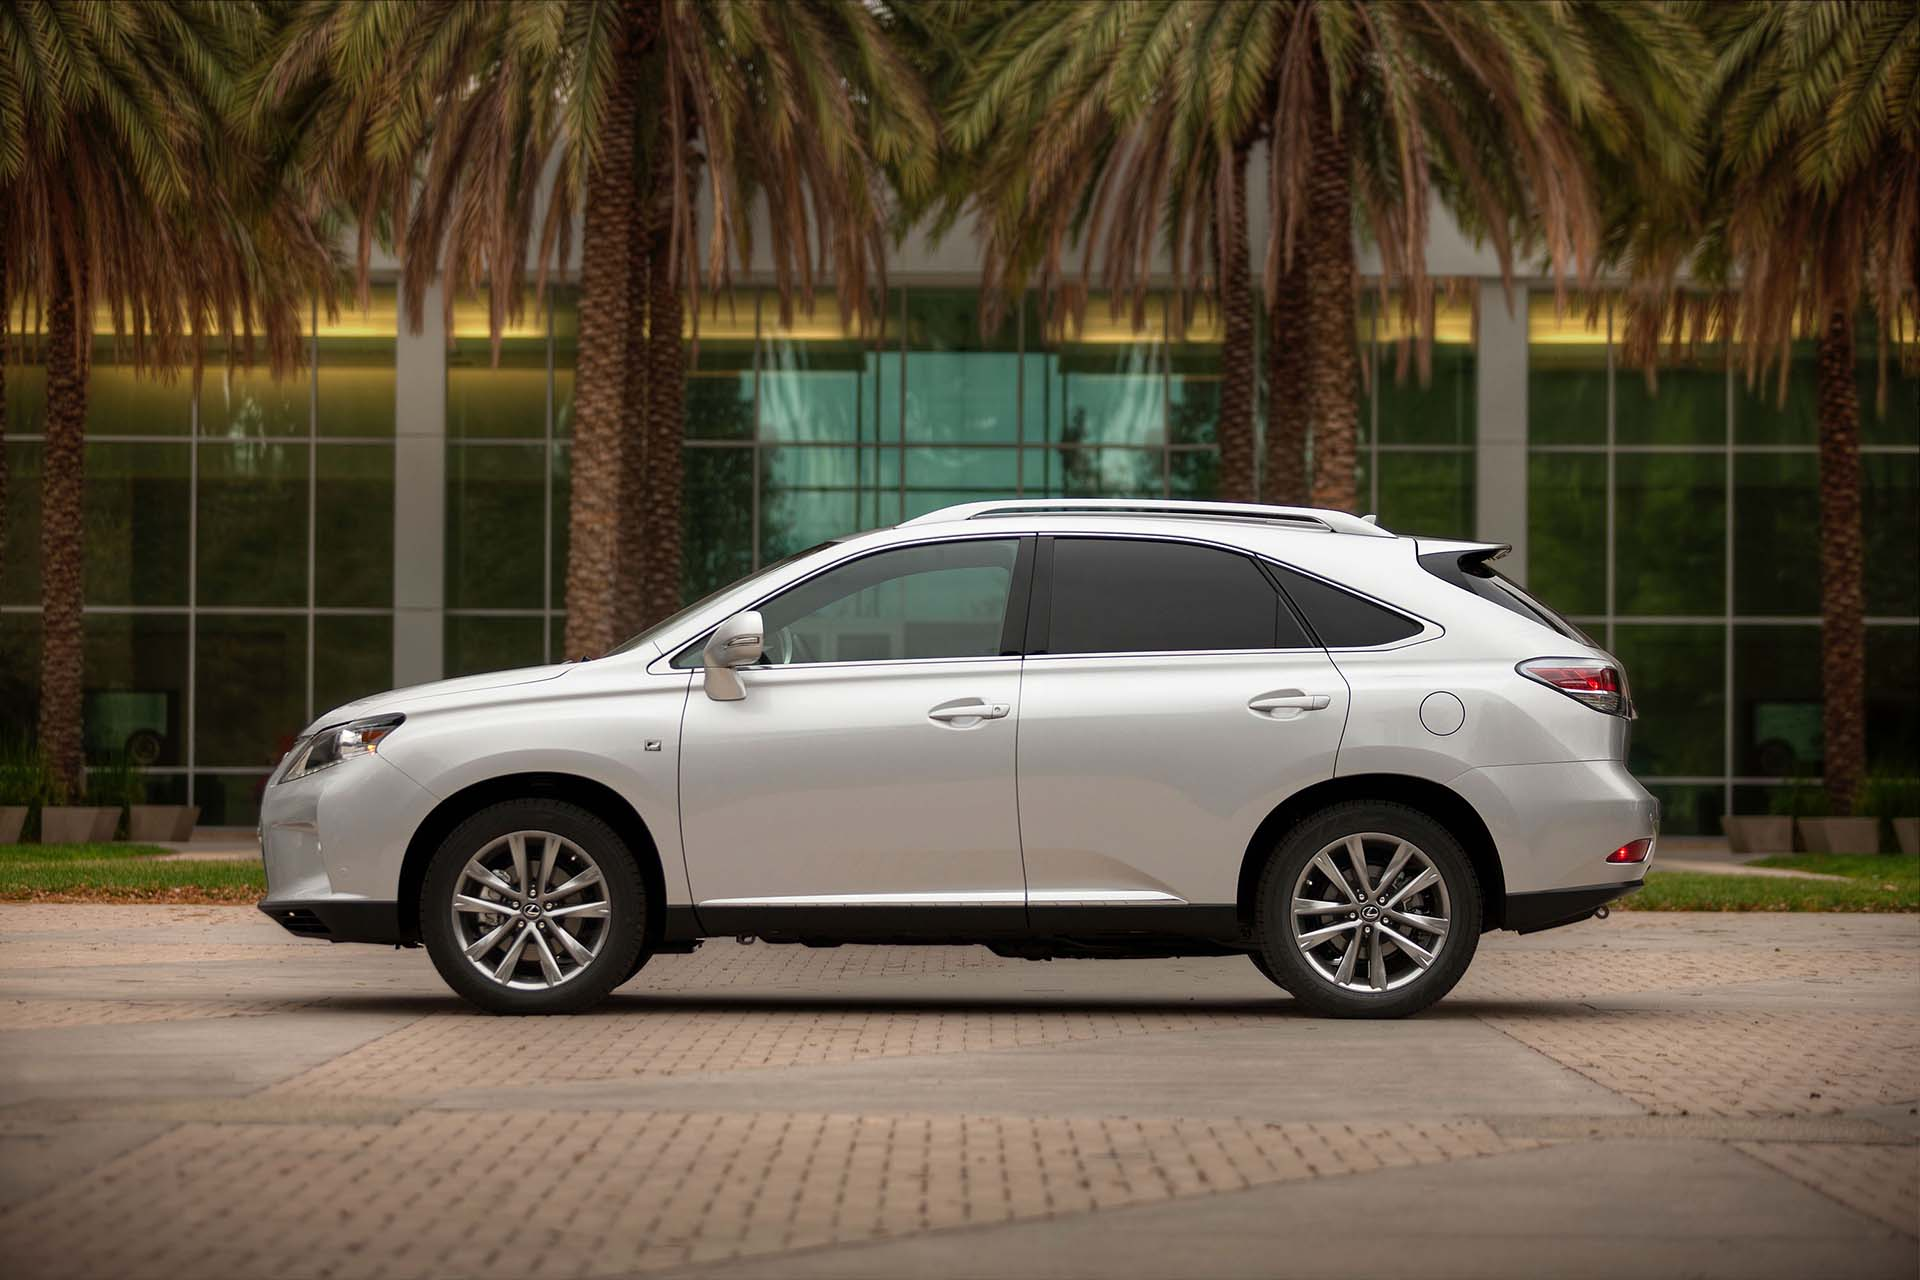 The third-generation Lexus RX came with the expected host of upgrades, from bumps in displacement (to 3.5L) and power (275 hp) to improved ergonomics and greater passenger area.